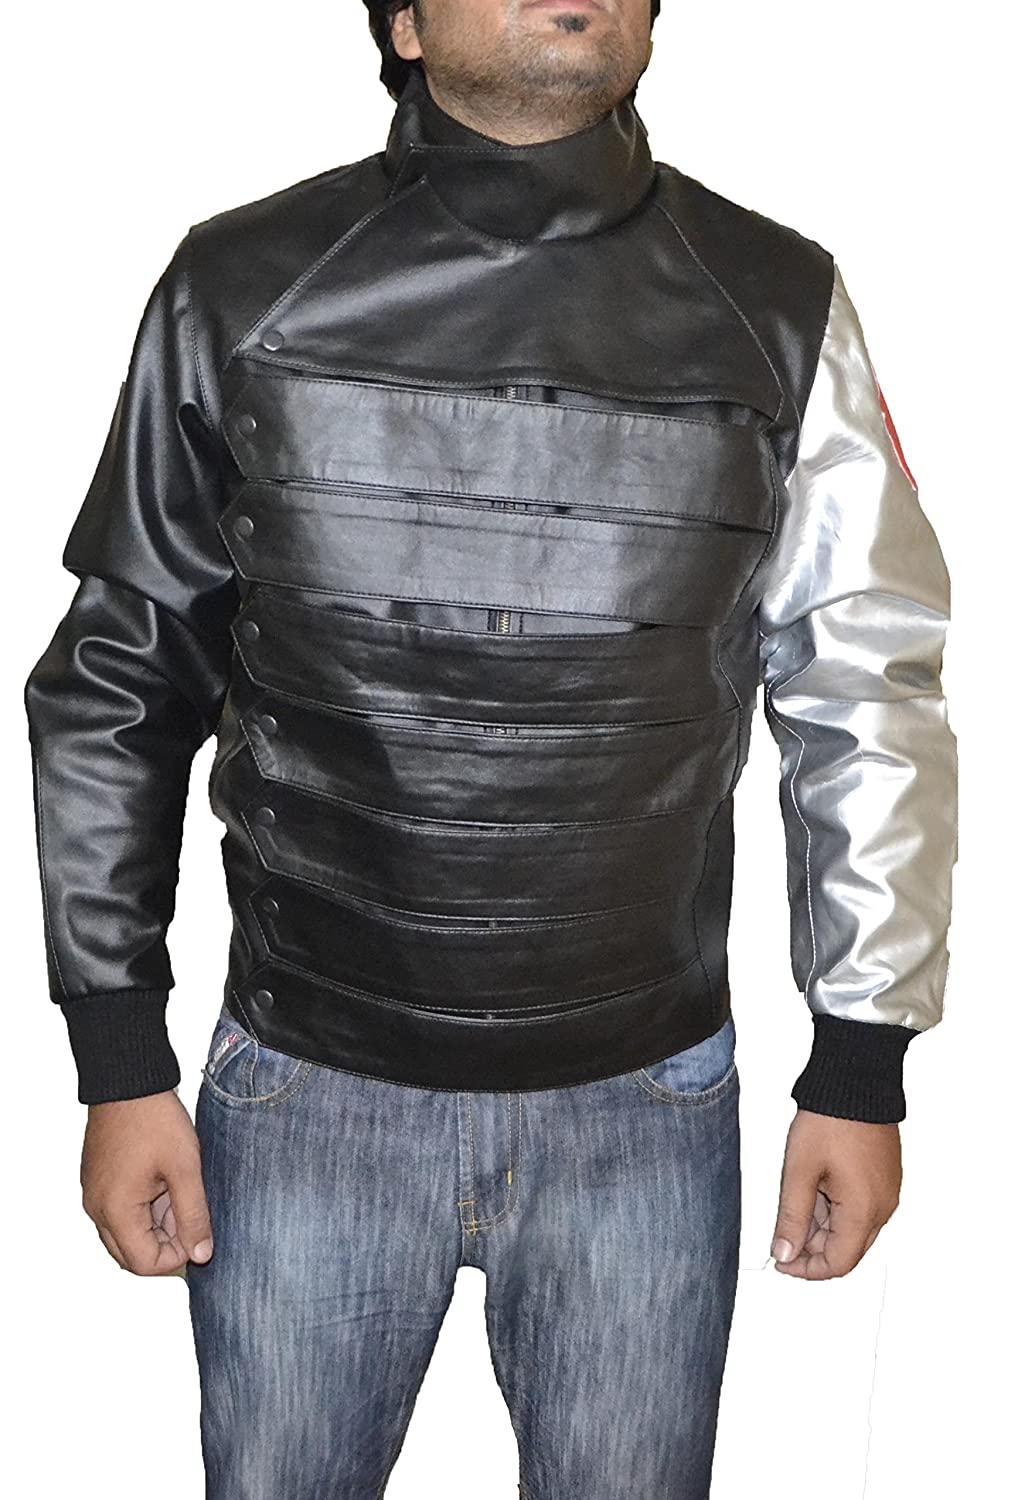 Captain America Winter Soldier Bucky Barnes Black & Silver Faux Leather Jacket-Best HALLOWEEN costume